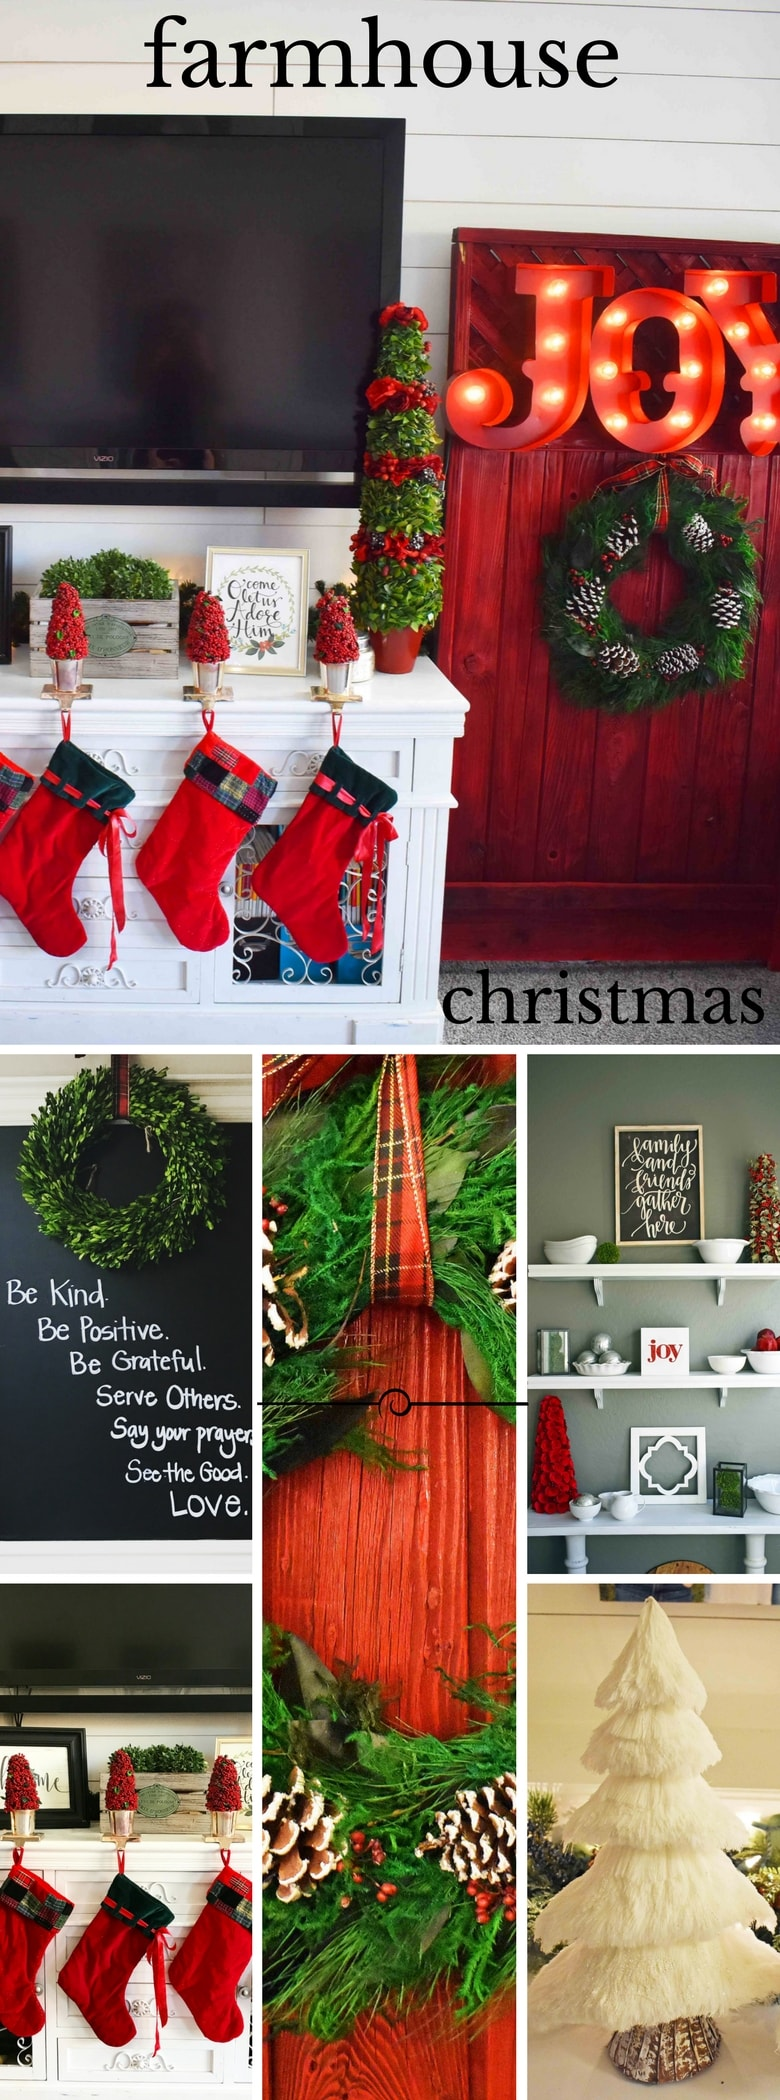 Farmhouse Christmas Decor inspired by Fixer Upper and Joanna Gaines. Rustic Christmas Charm Decor.